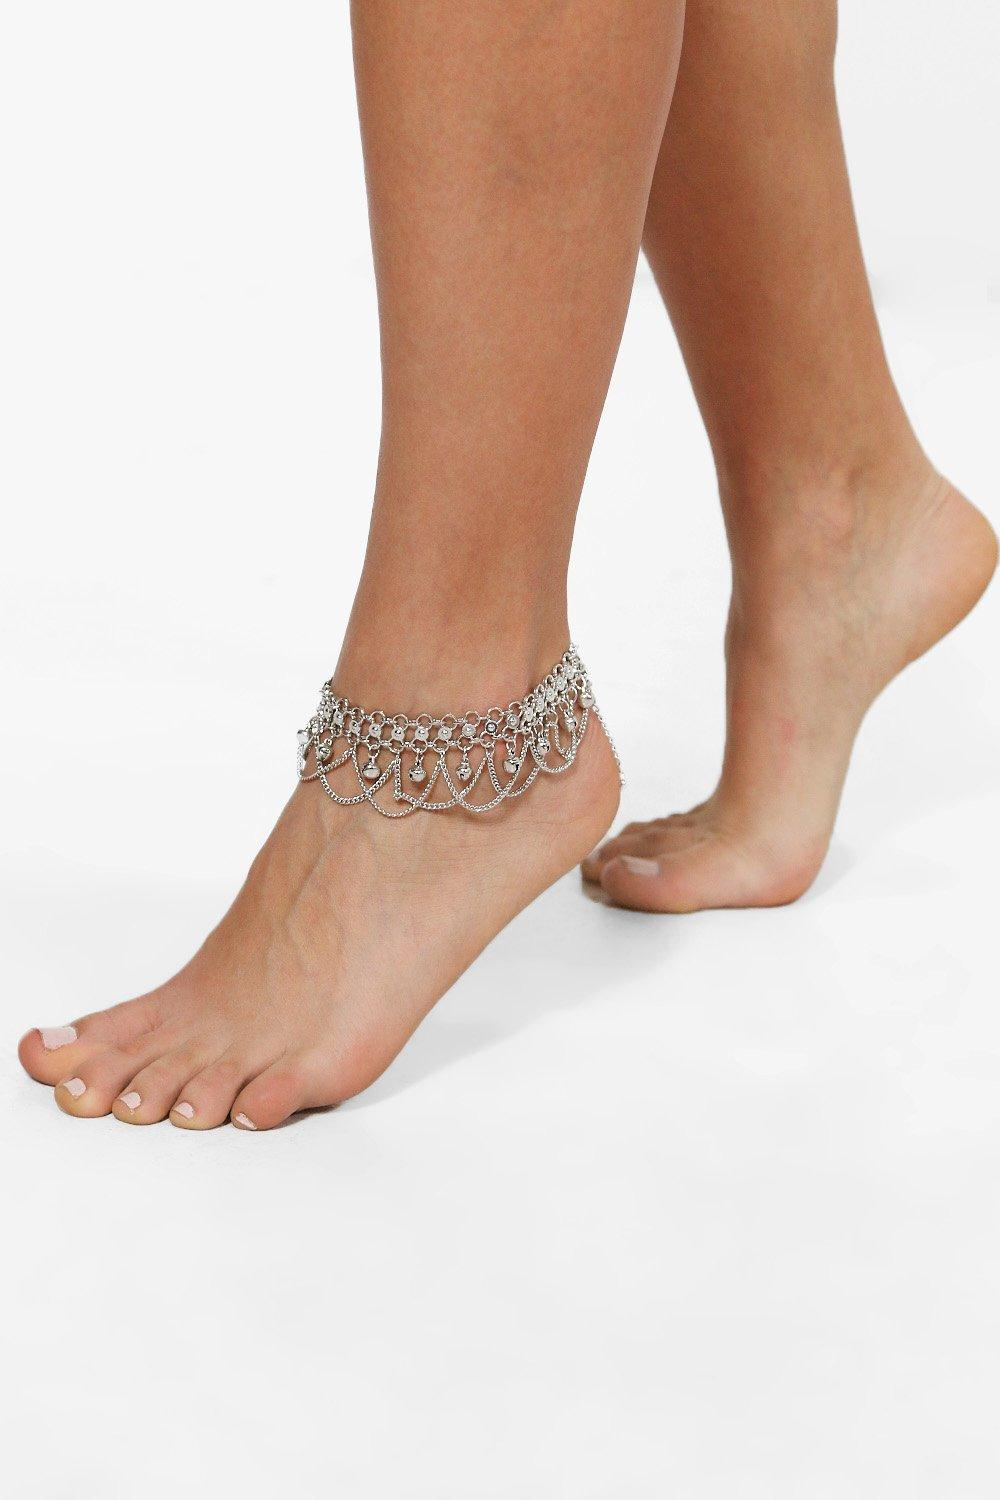 Boutique Chain & Bell Embellished Anklet  silver